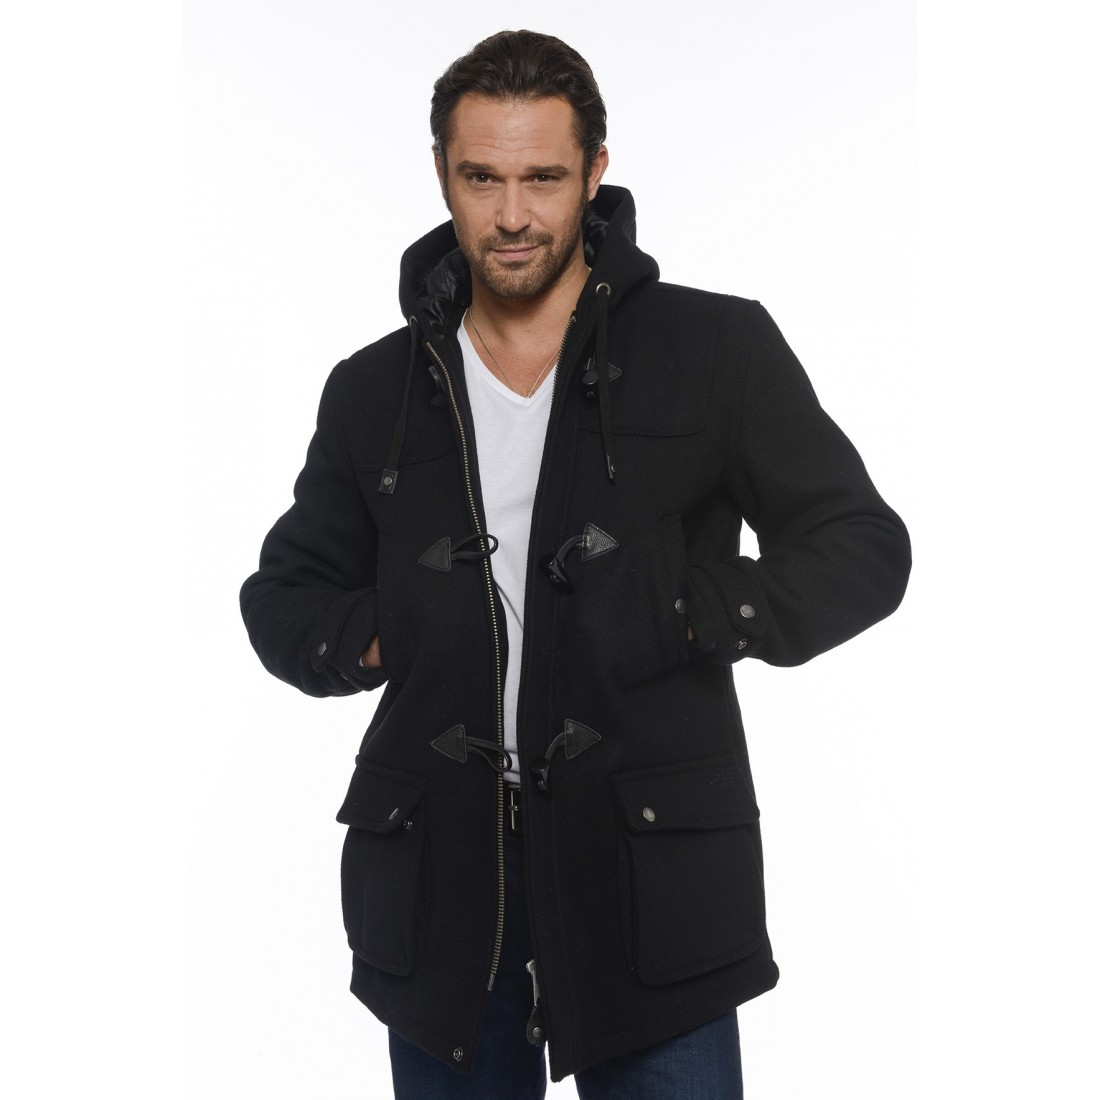 blouson duffle coat schott warren noir pour homme. Black Bedroom Furniture Sets. Home Design Ideas